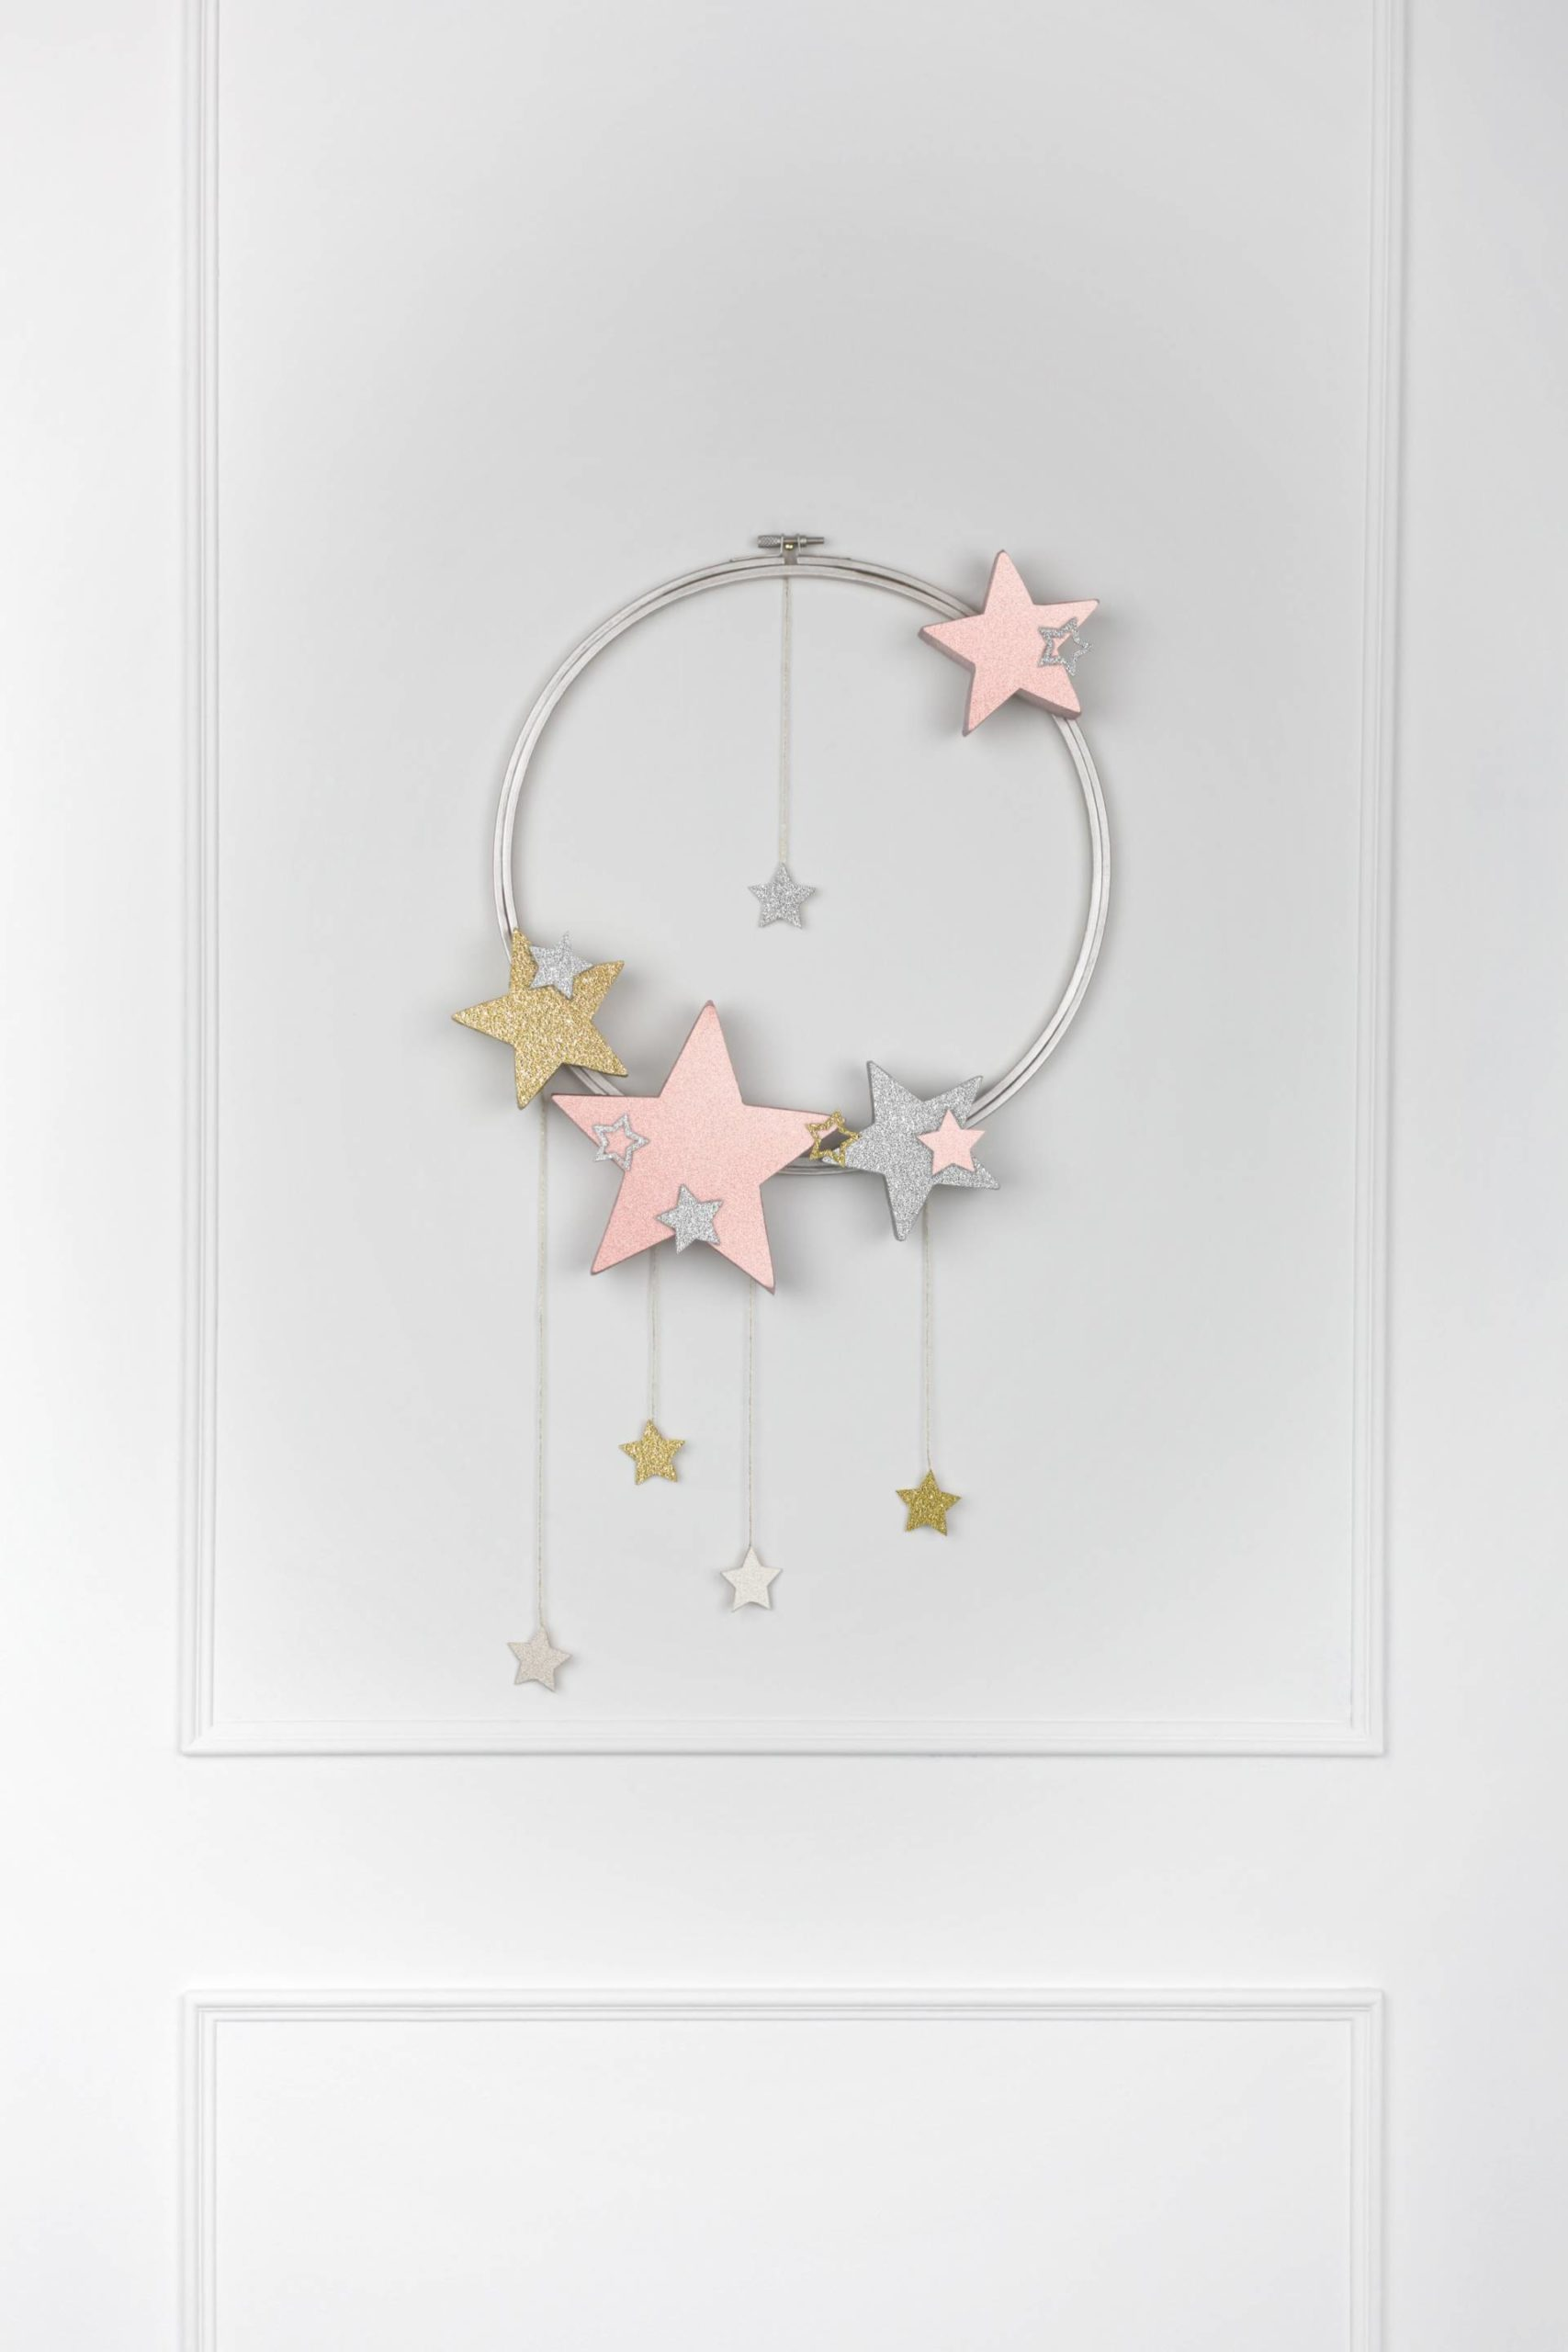 DIY festive star wall hanging